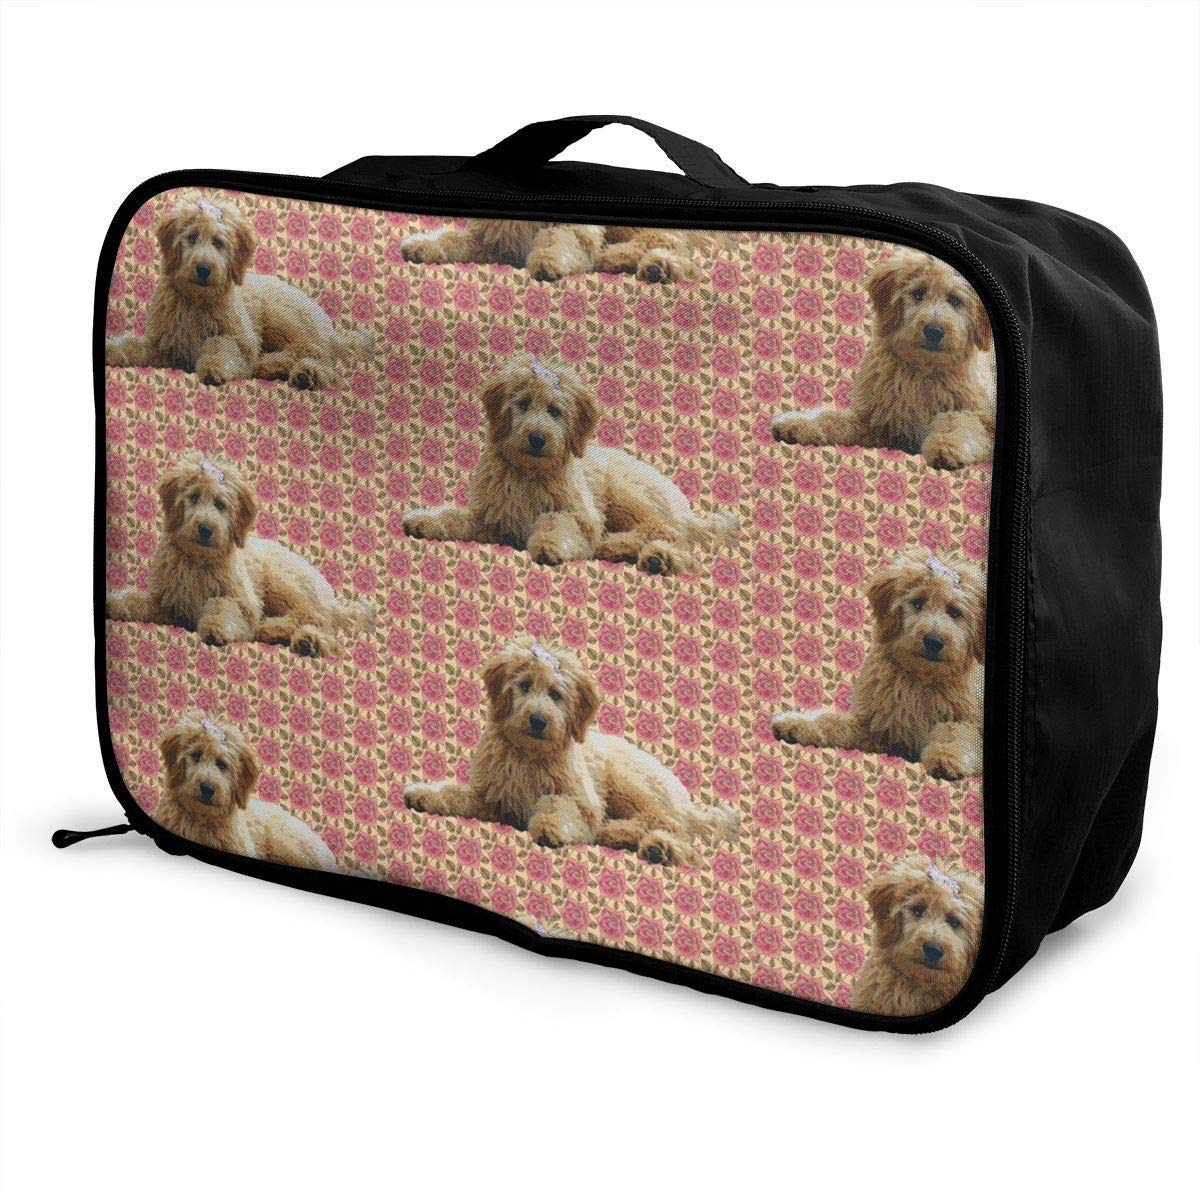 Portable Luggage Duffel Bag Goldendoodle Travel Bags Carry-on in Trolley Handle JTRVW Luggage Bags for Travel